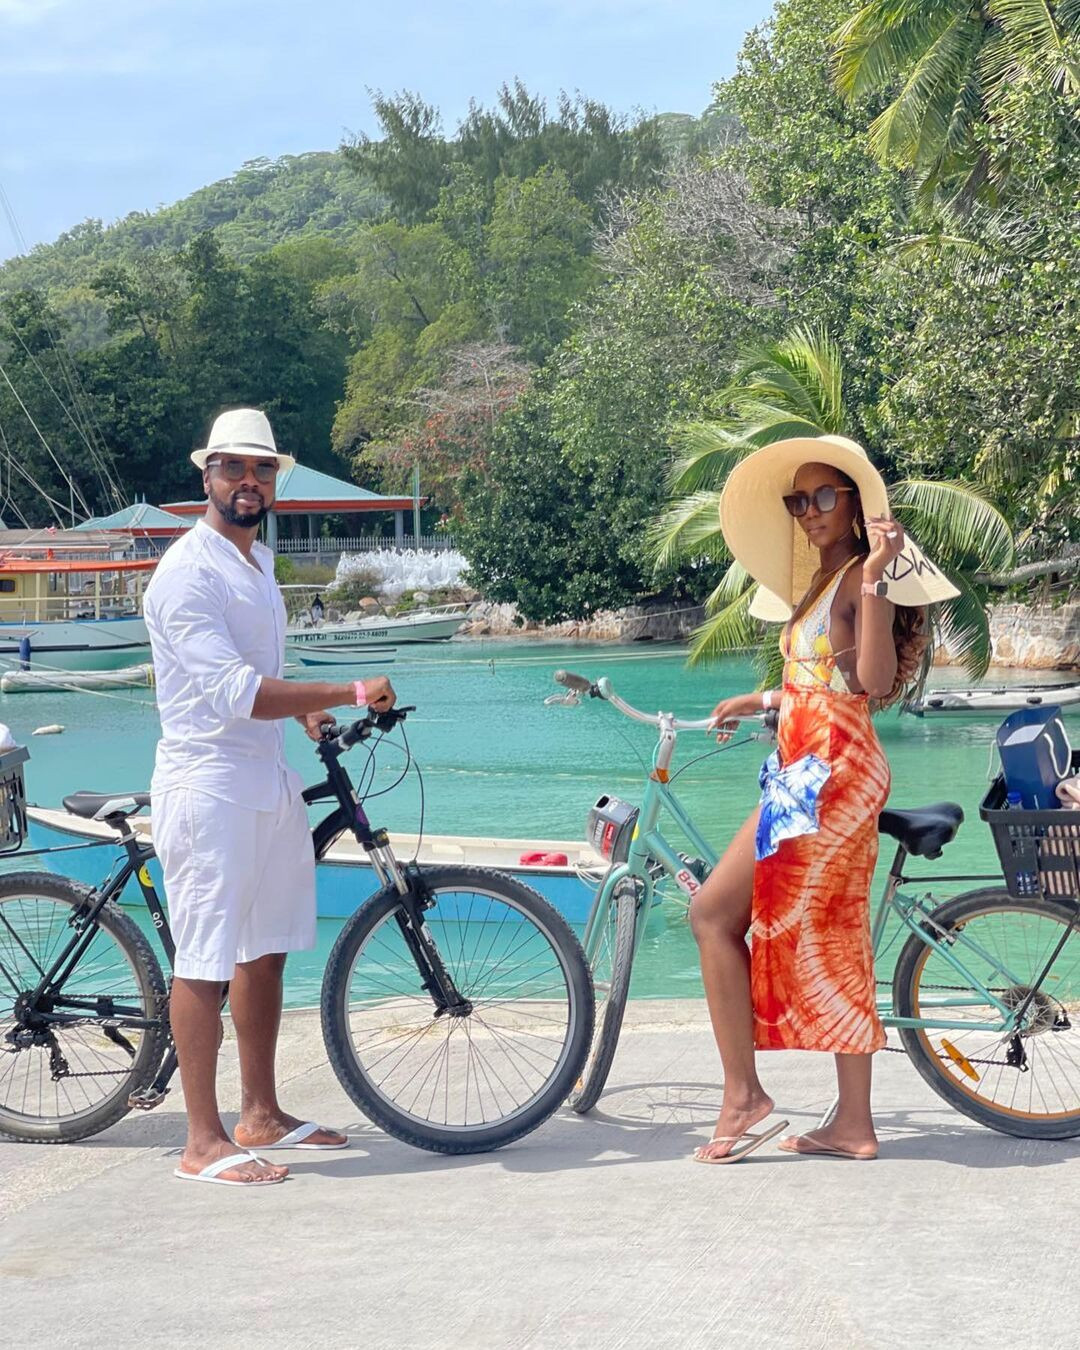 61409084a67fb - Media personality, Debola Williams and wife spend their honeymoon in Seychelles